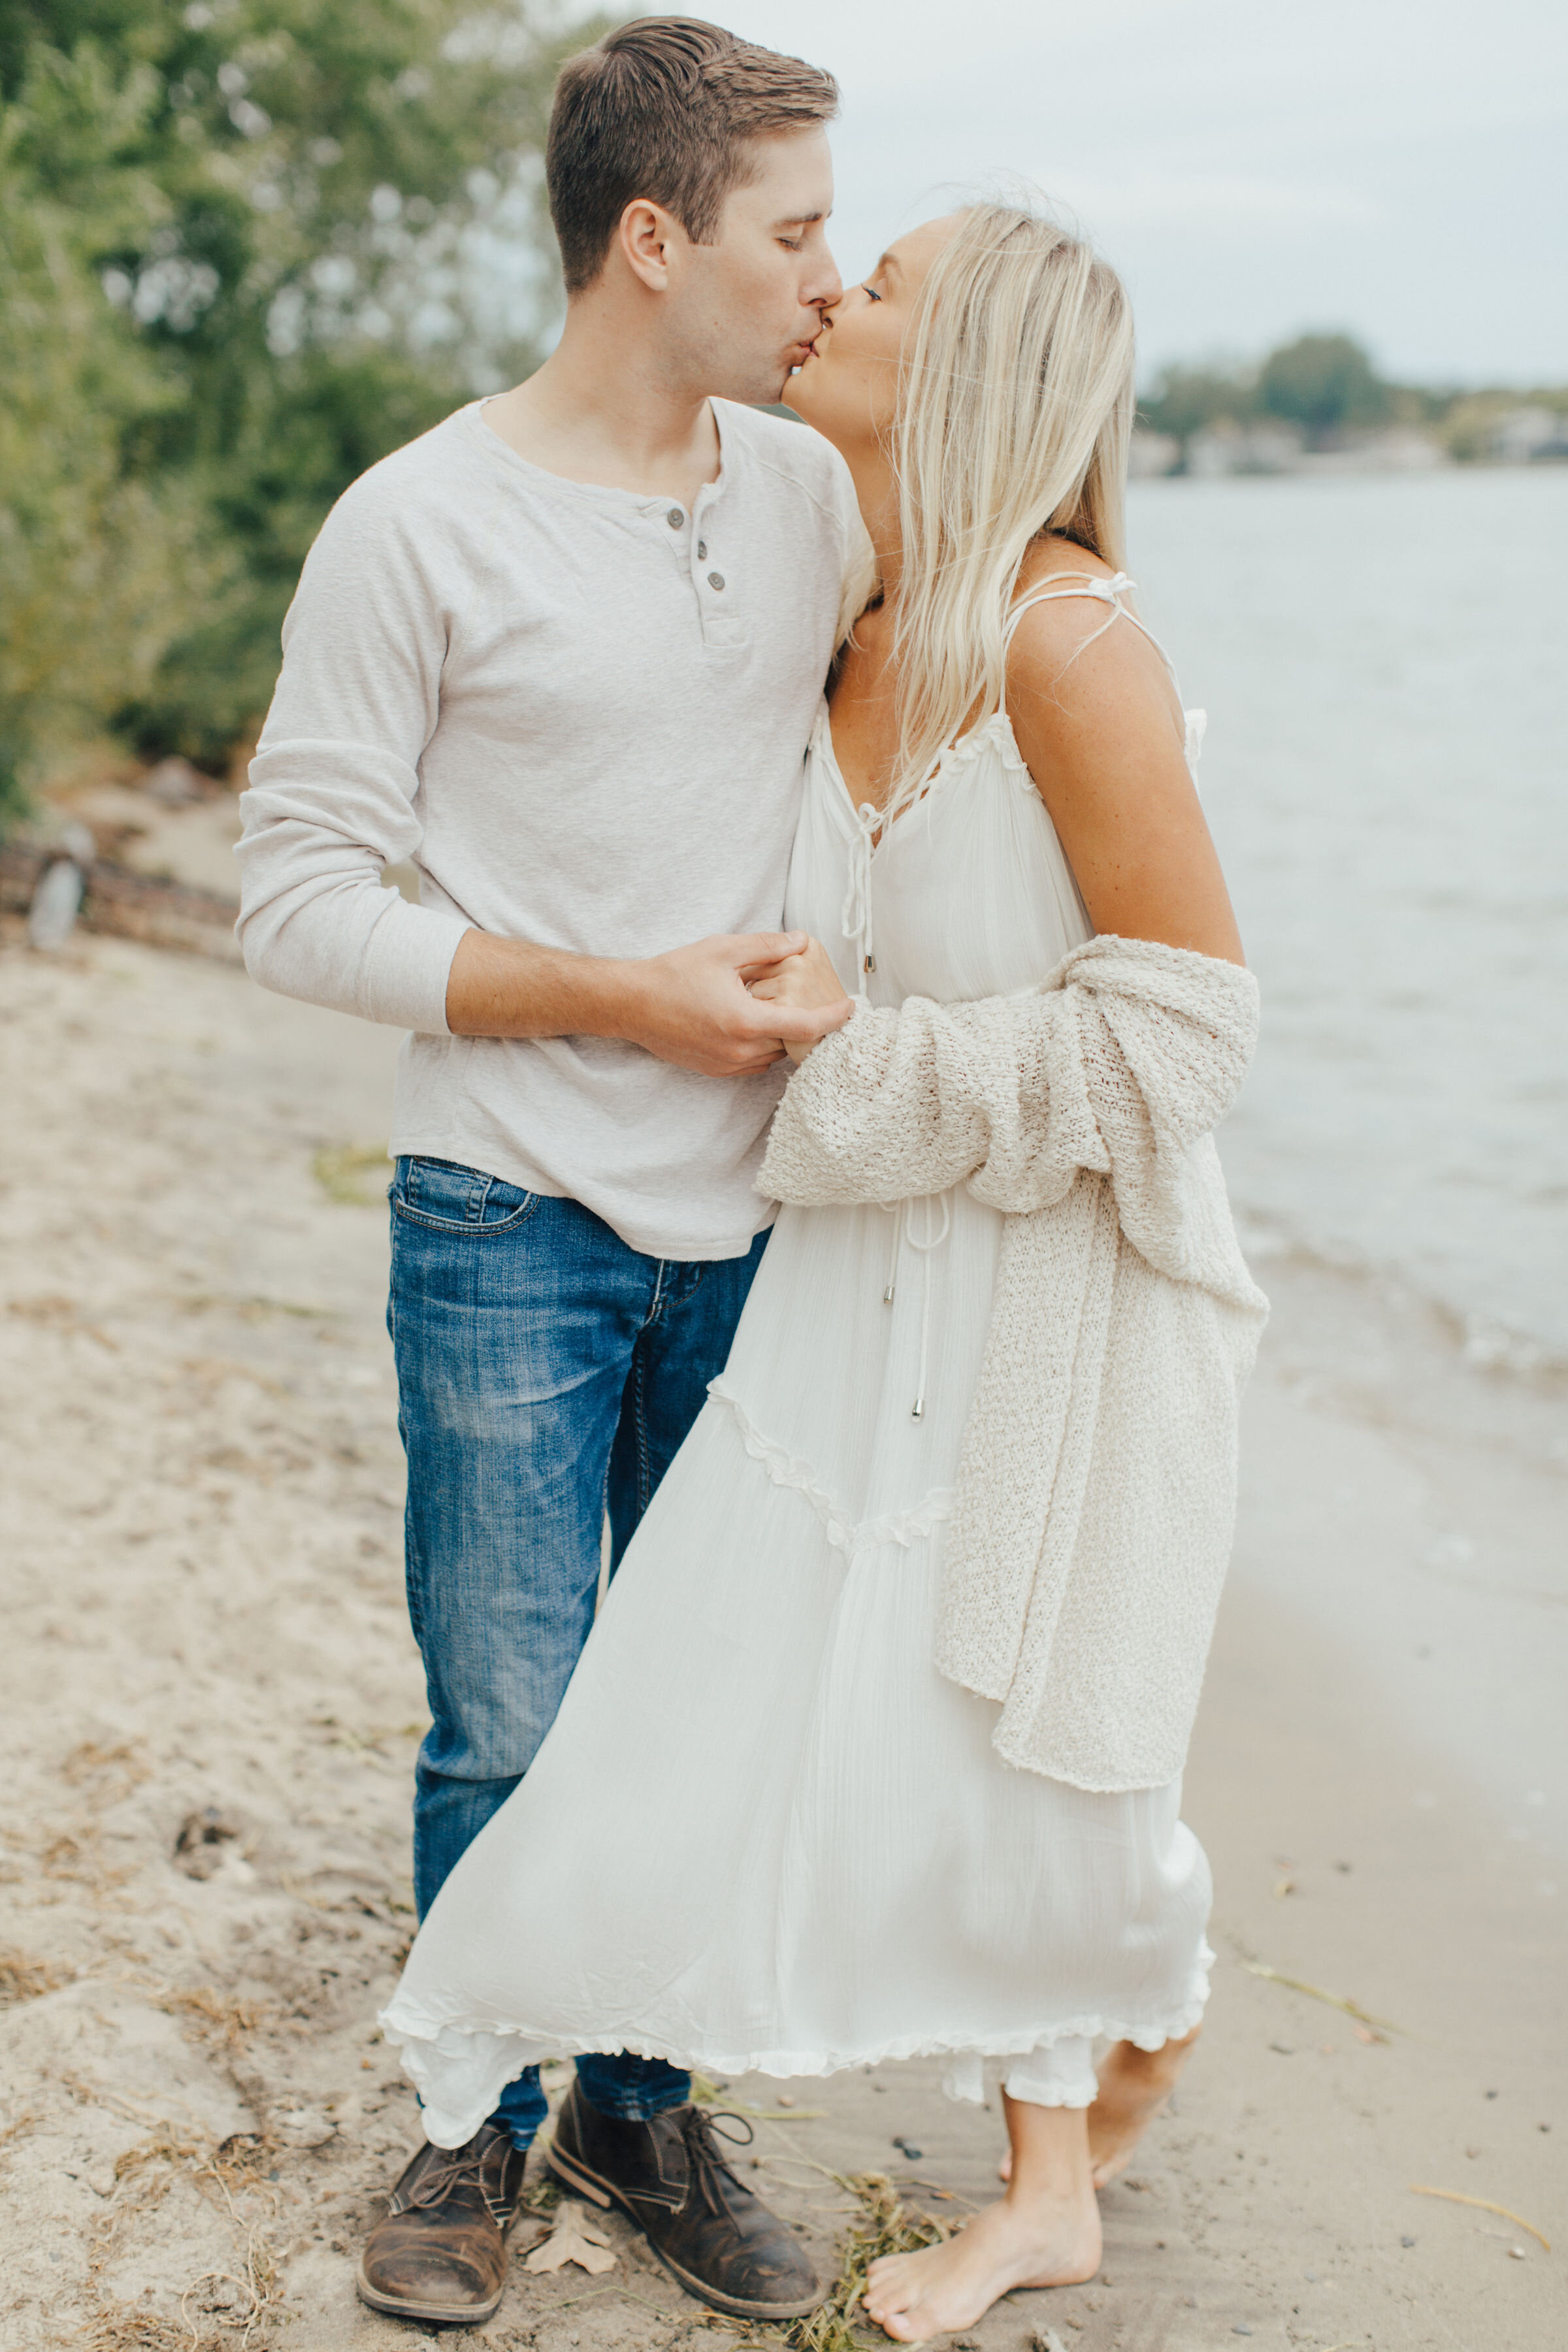 DecoraToppPhotography_ErinRyanEngagement-9734.jpg